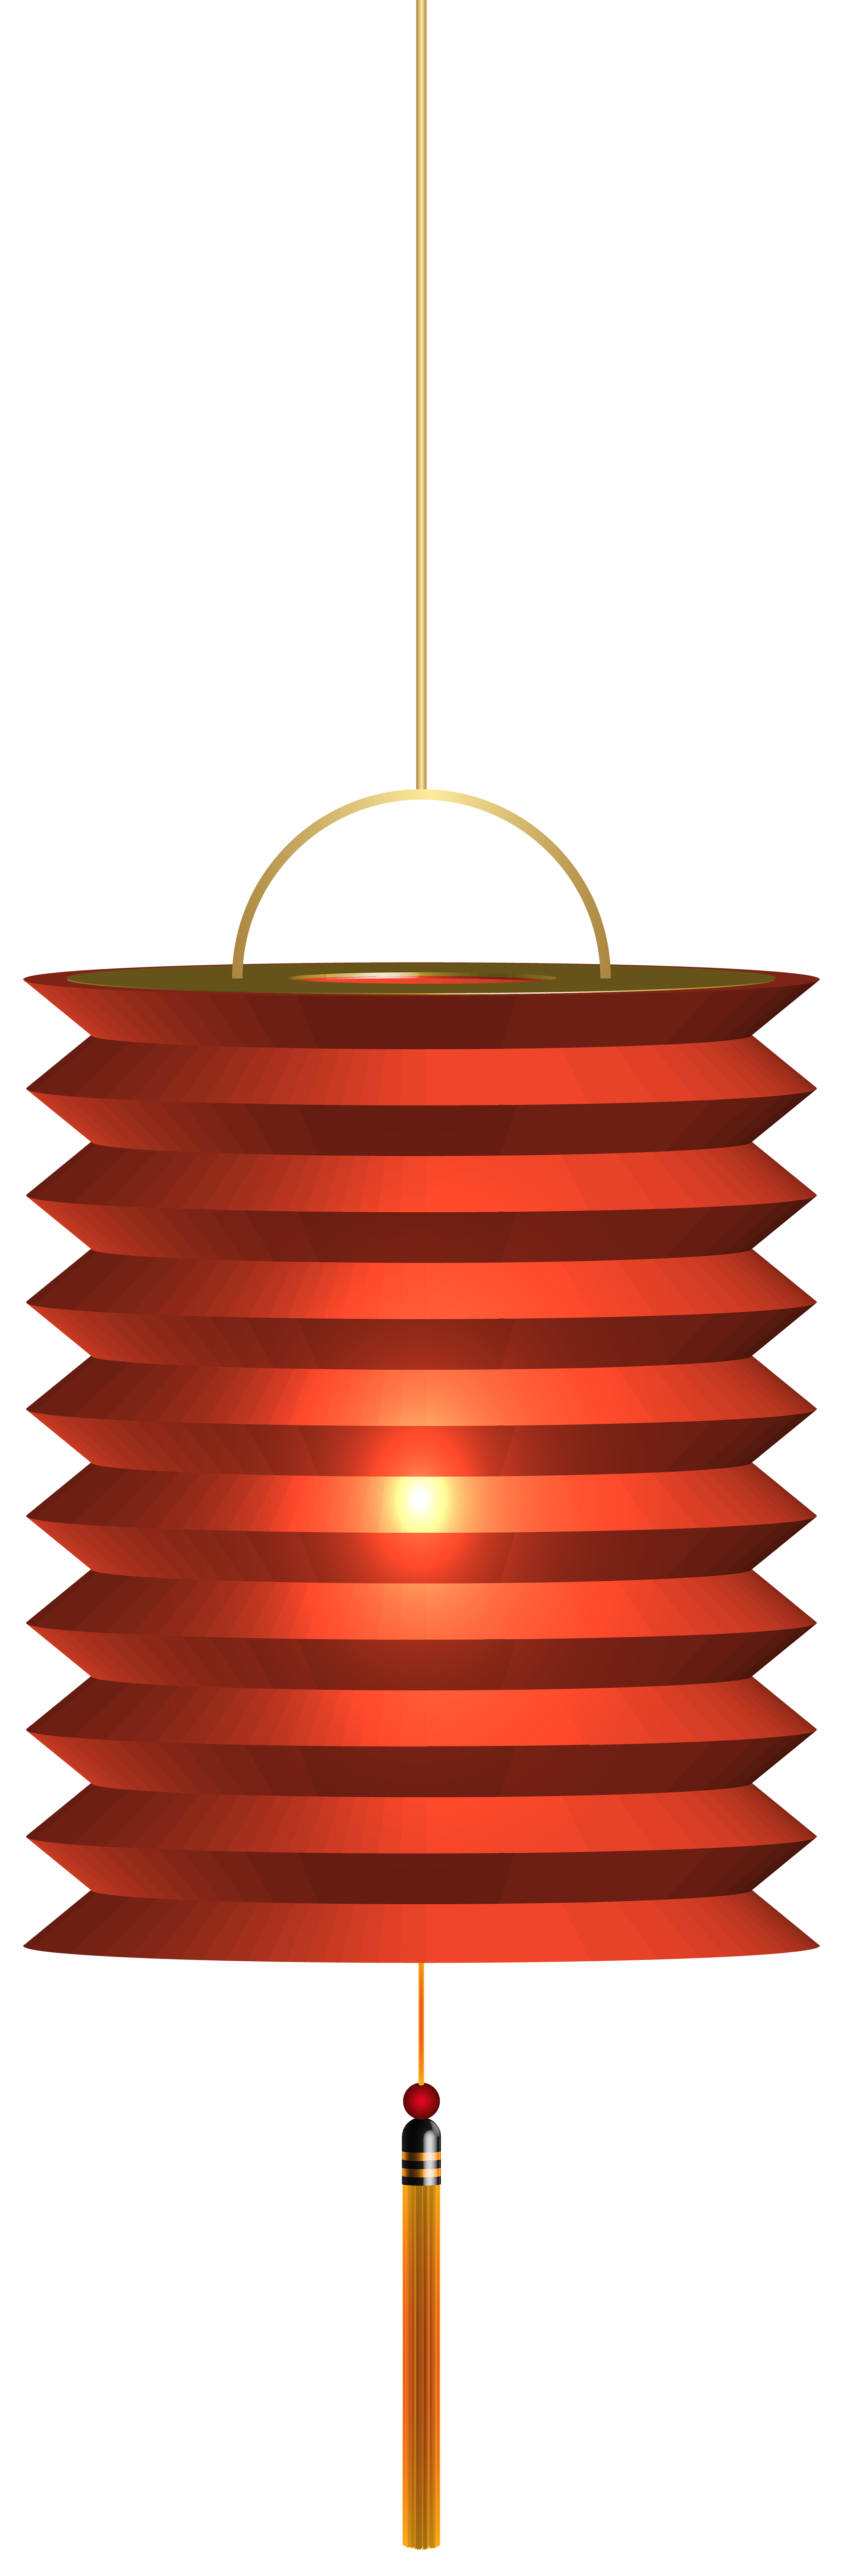 Red paper lantern png. Chinese clipart lamp chinese clip free download